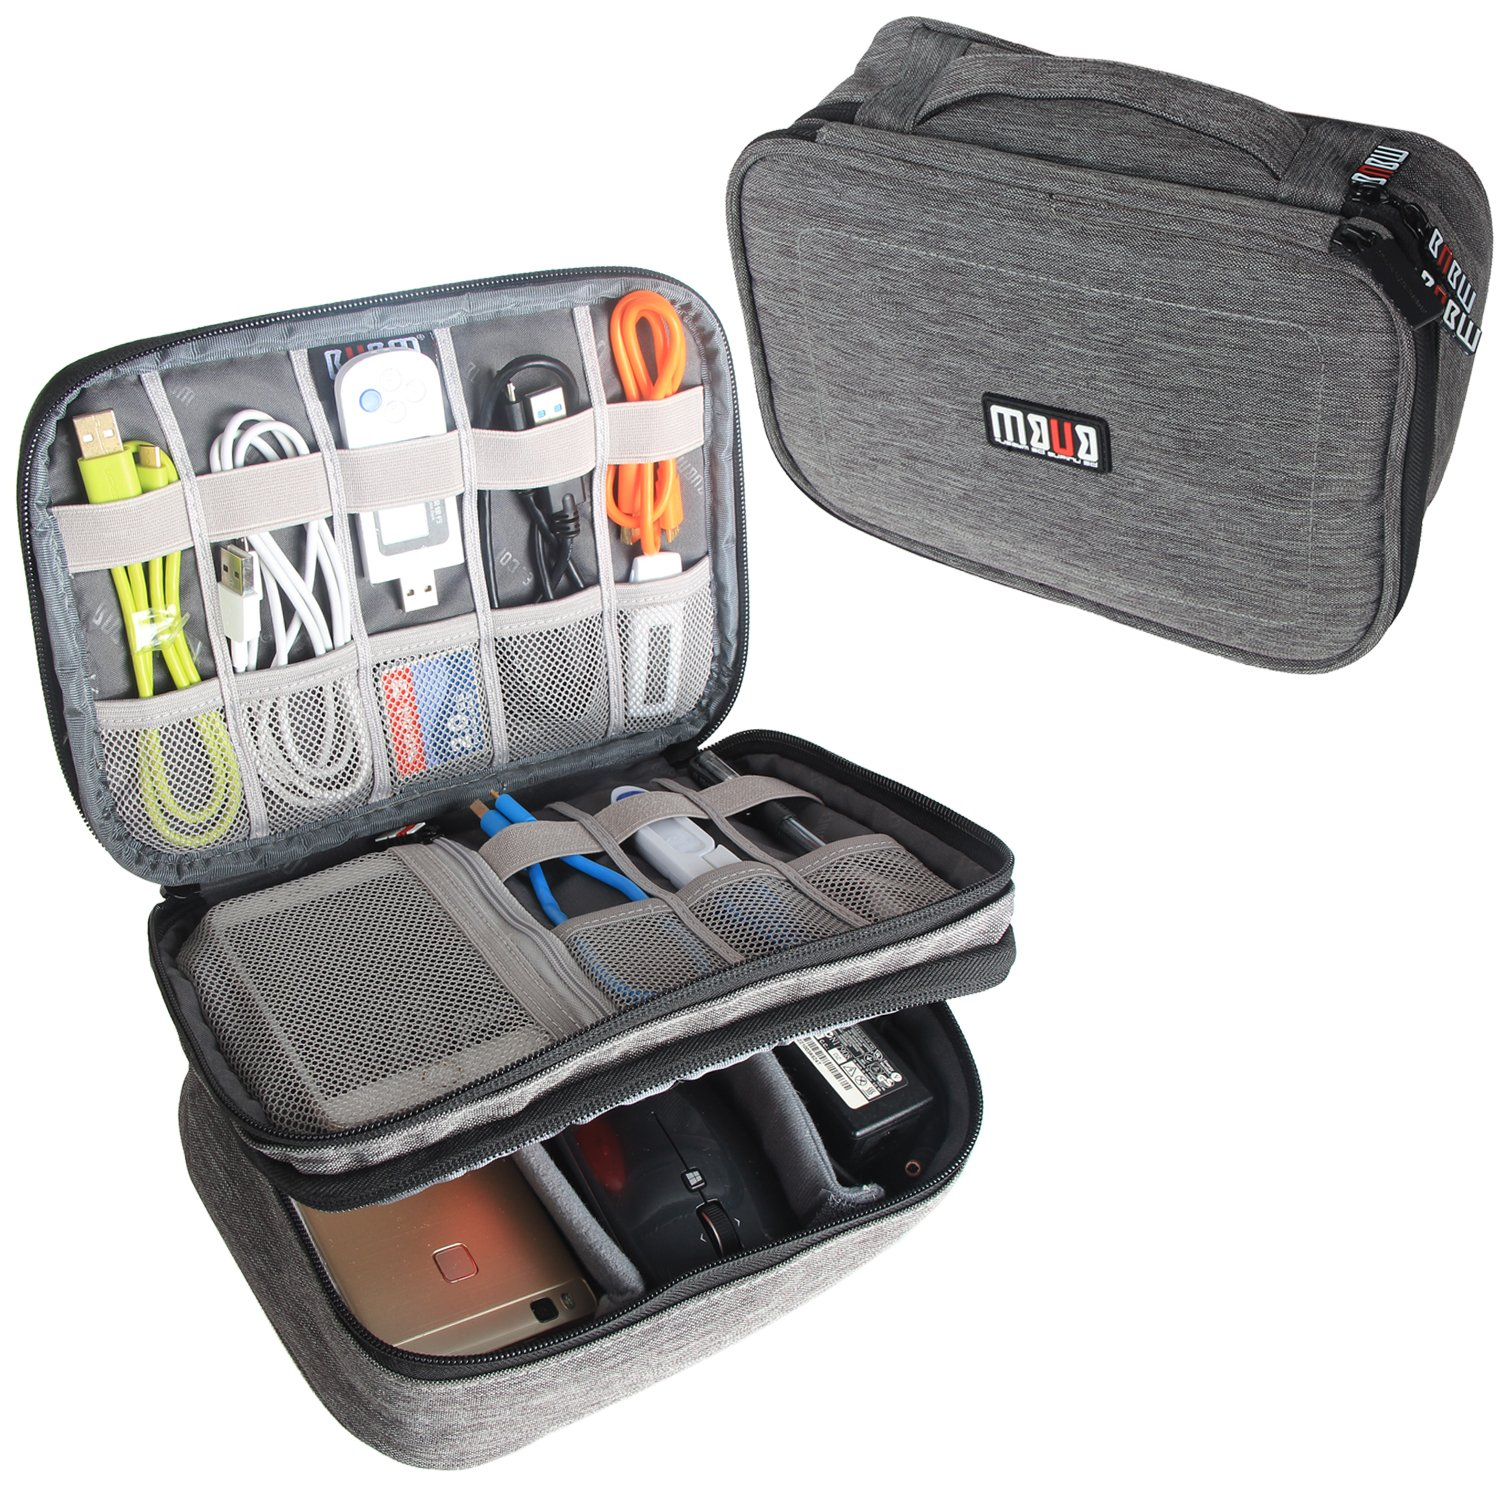 BUBM Electronic Organizer, Double Layer Travel Gadget Storage Bag for Cables, Cord, USB Flash Drive, Power Bank and More-a Sleeve Pouch for 7.9'' iPad Mini (Medium,Denim Gray)